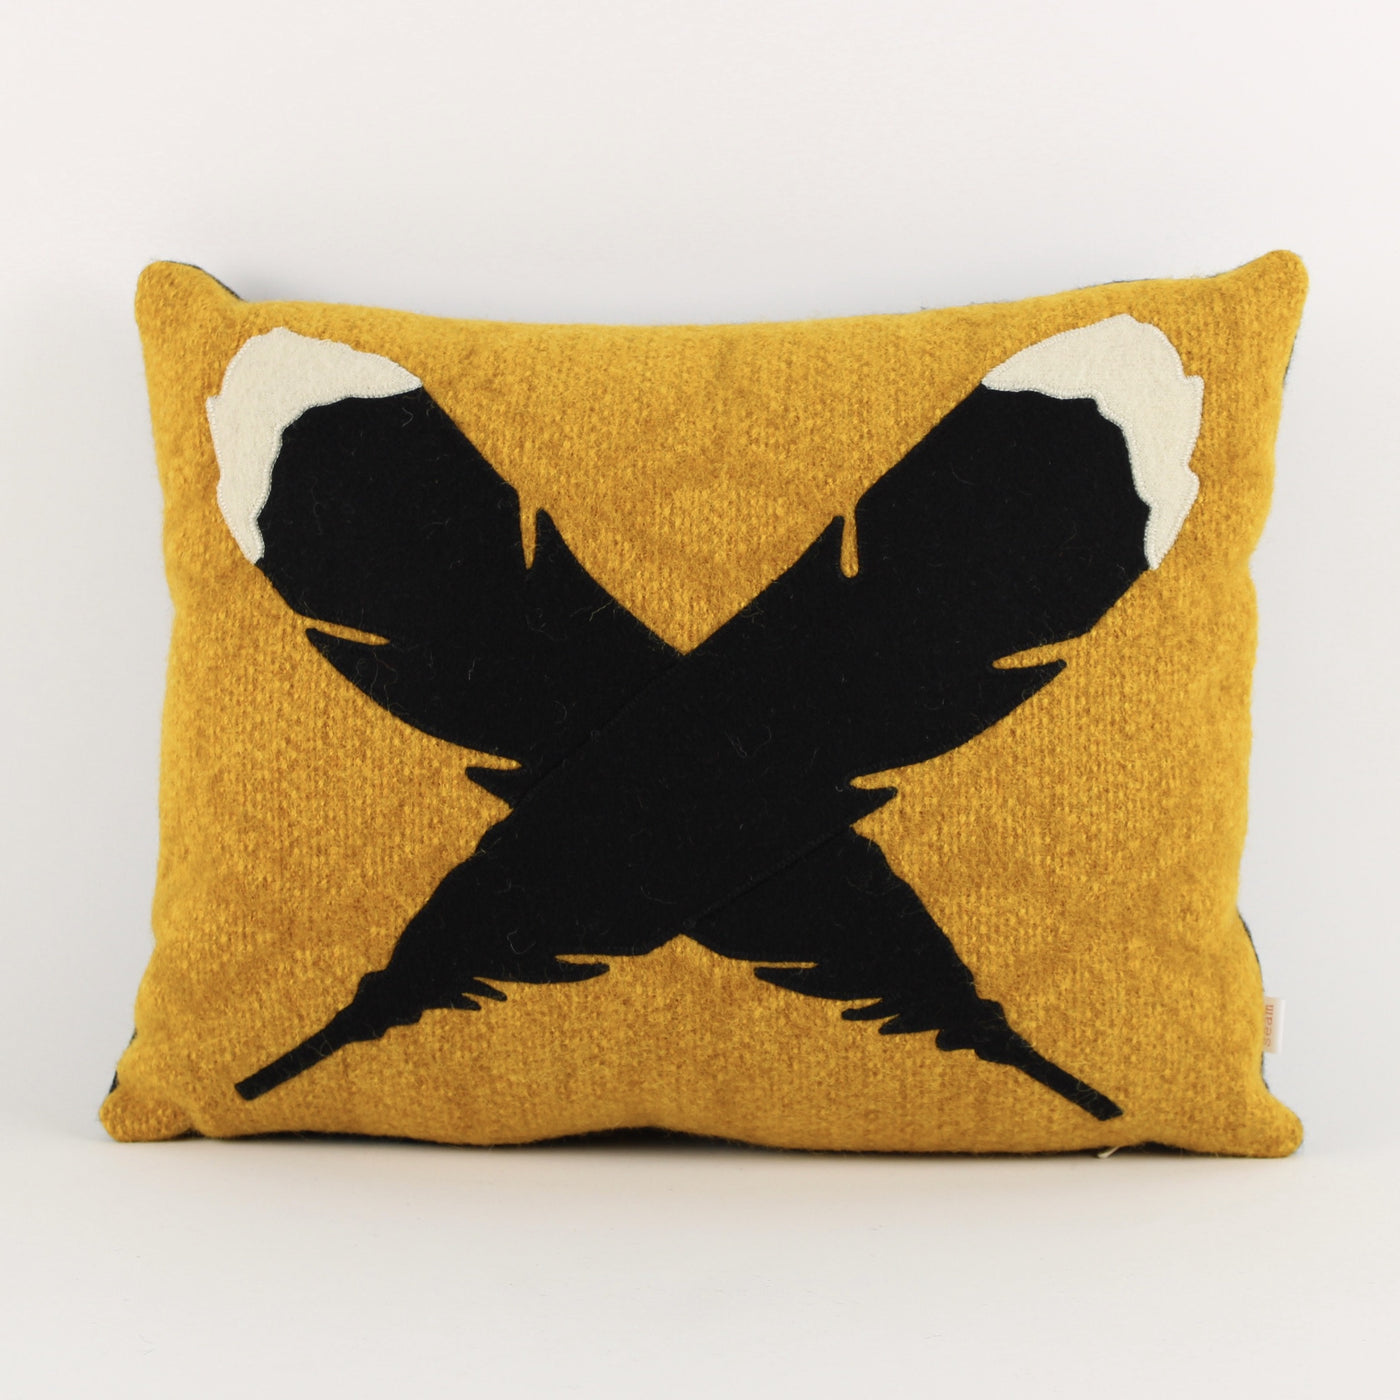 Huia feathers cushion- mustard background